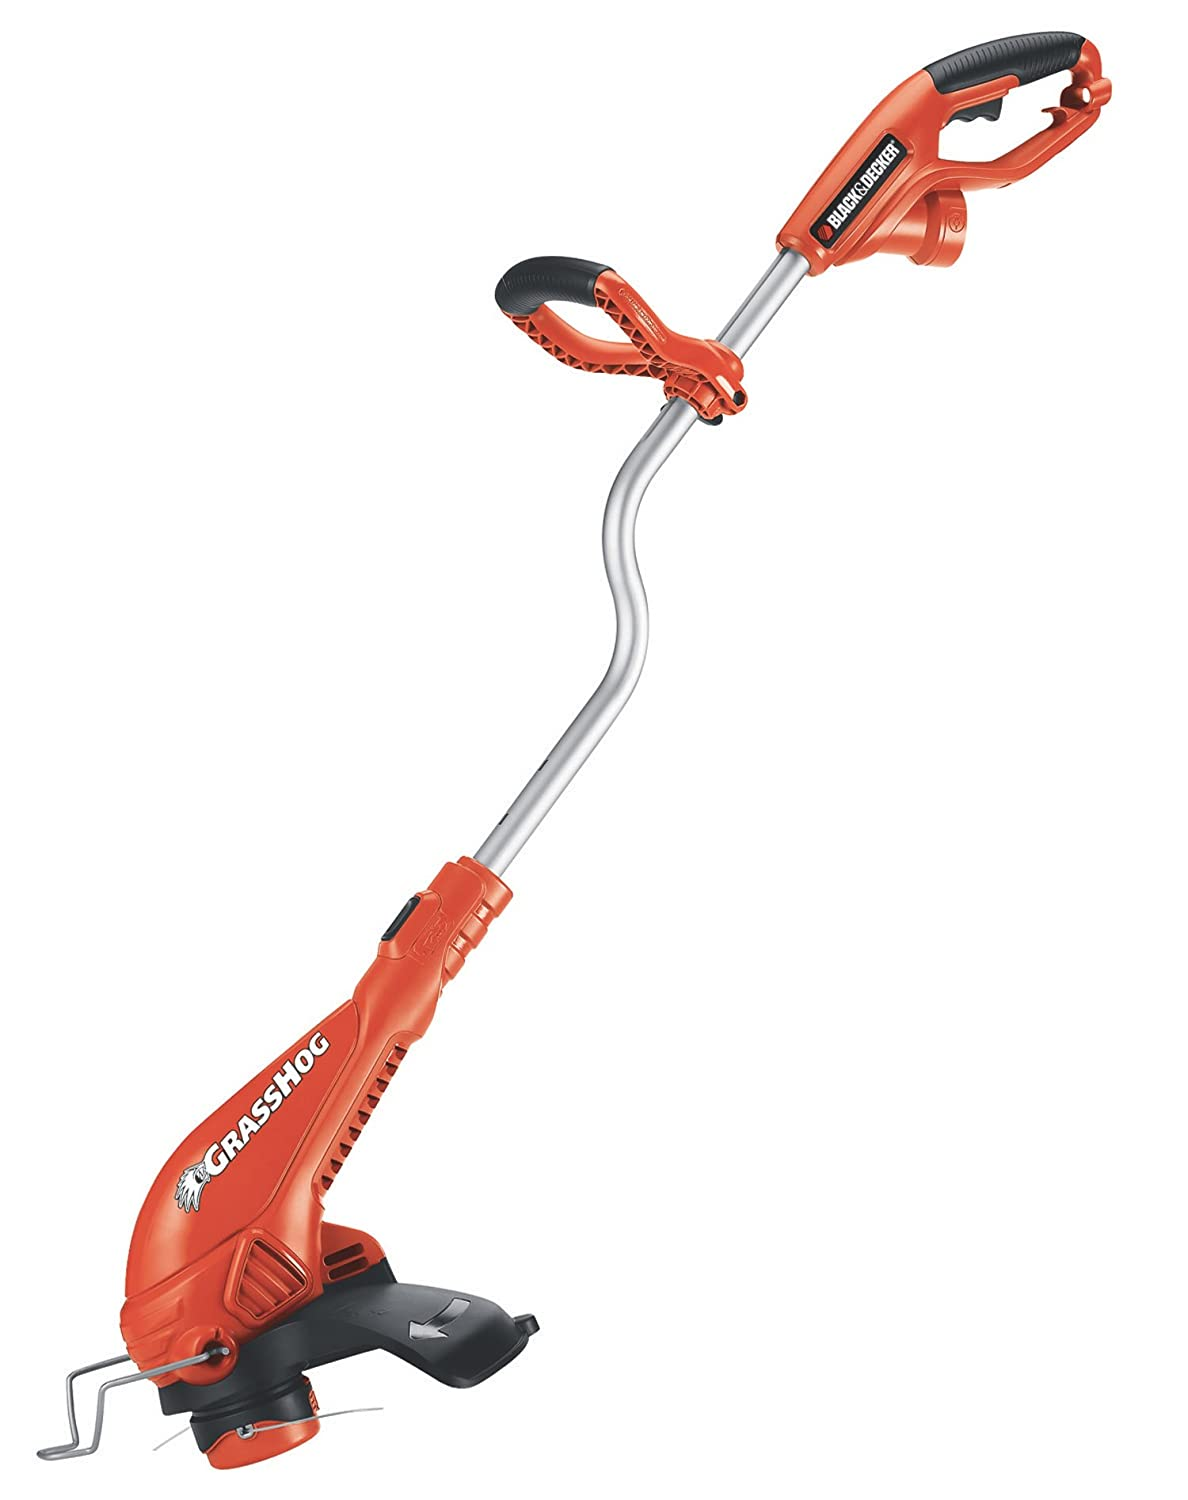 "Black & Decker Factory-Reconditioned Black & decker 14"" GRASSHOG Trimmer/Edger GH700 at Sears.com"